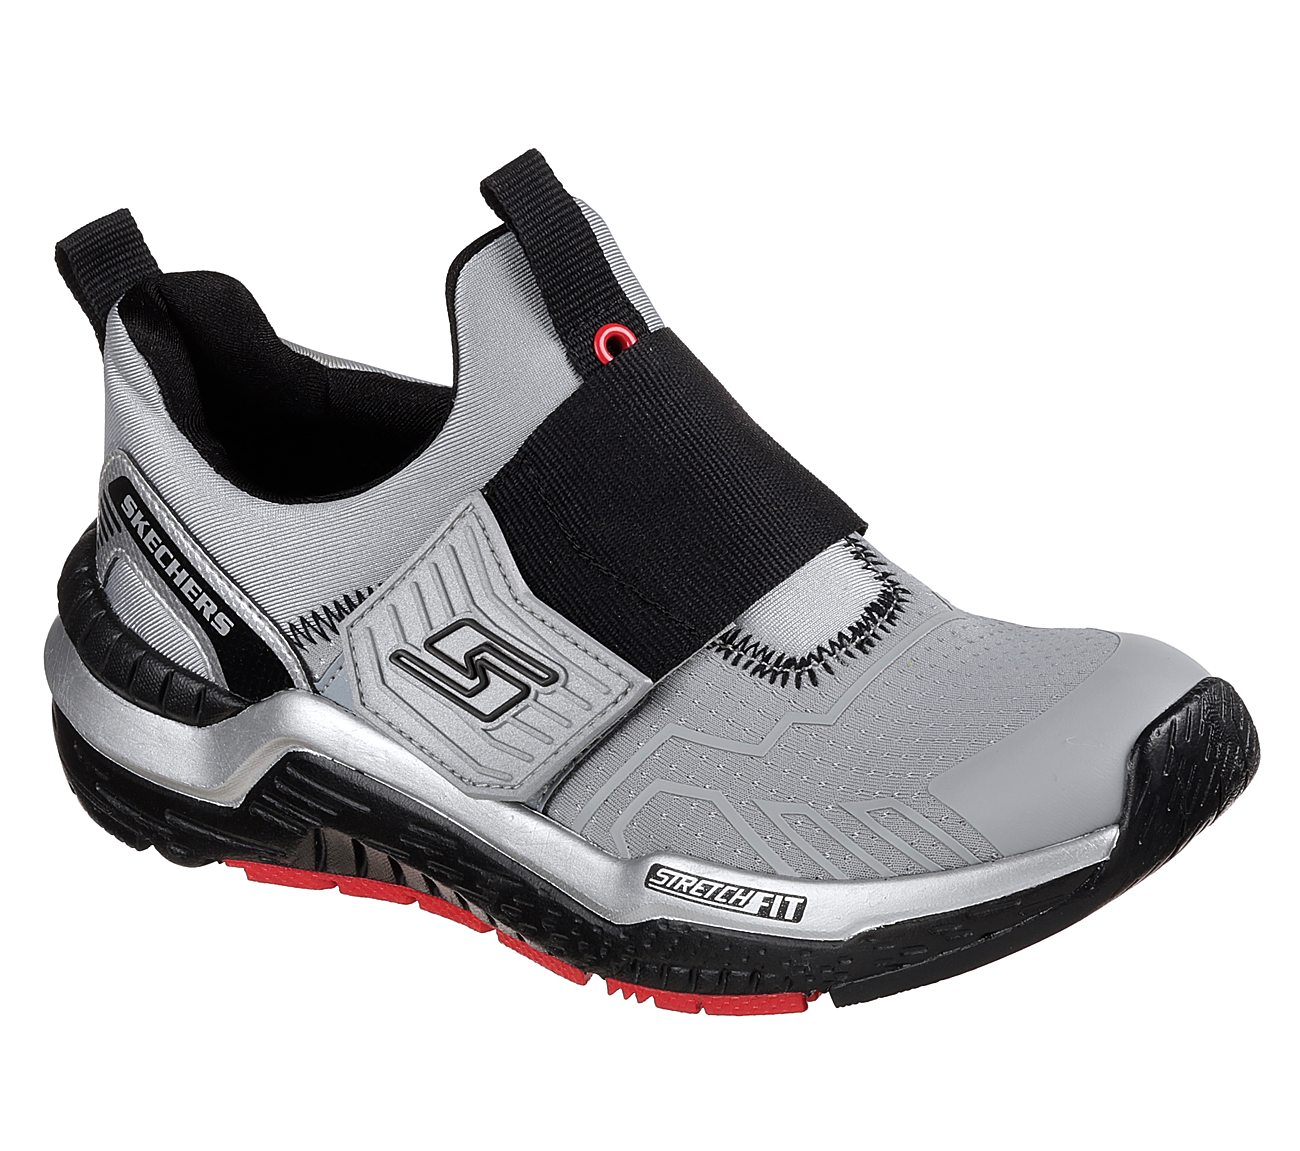 2baa33f4df2b Buy SKECHERS Hyperjolt - Thermospeed Training Shoes Shoes only £44.00